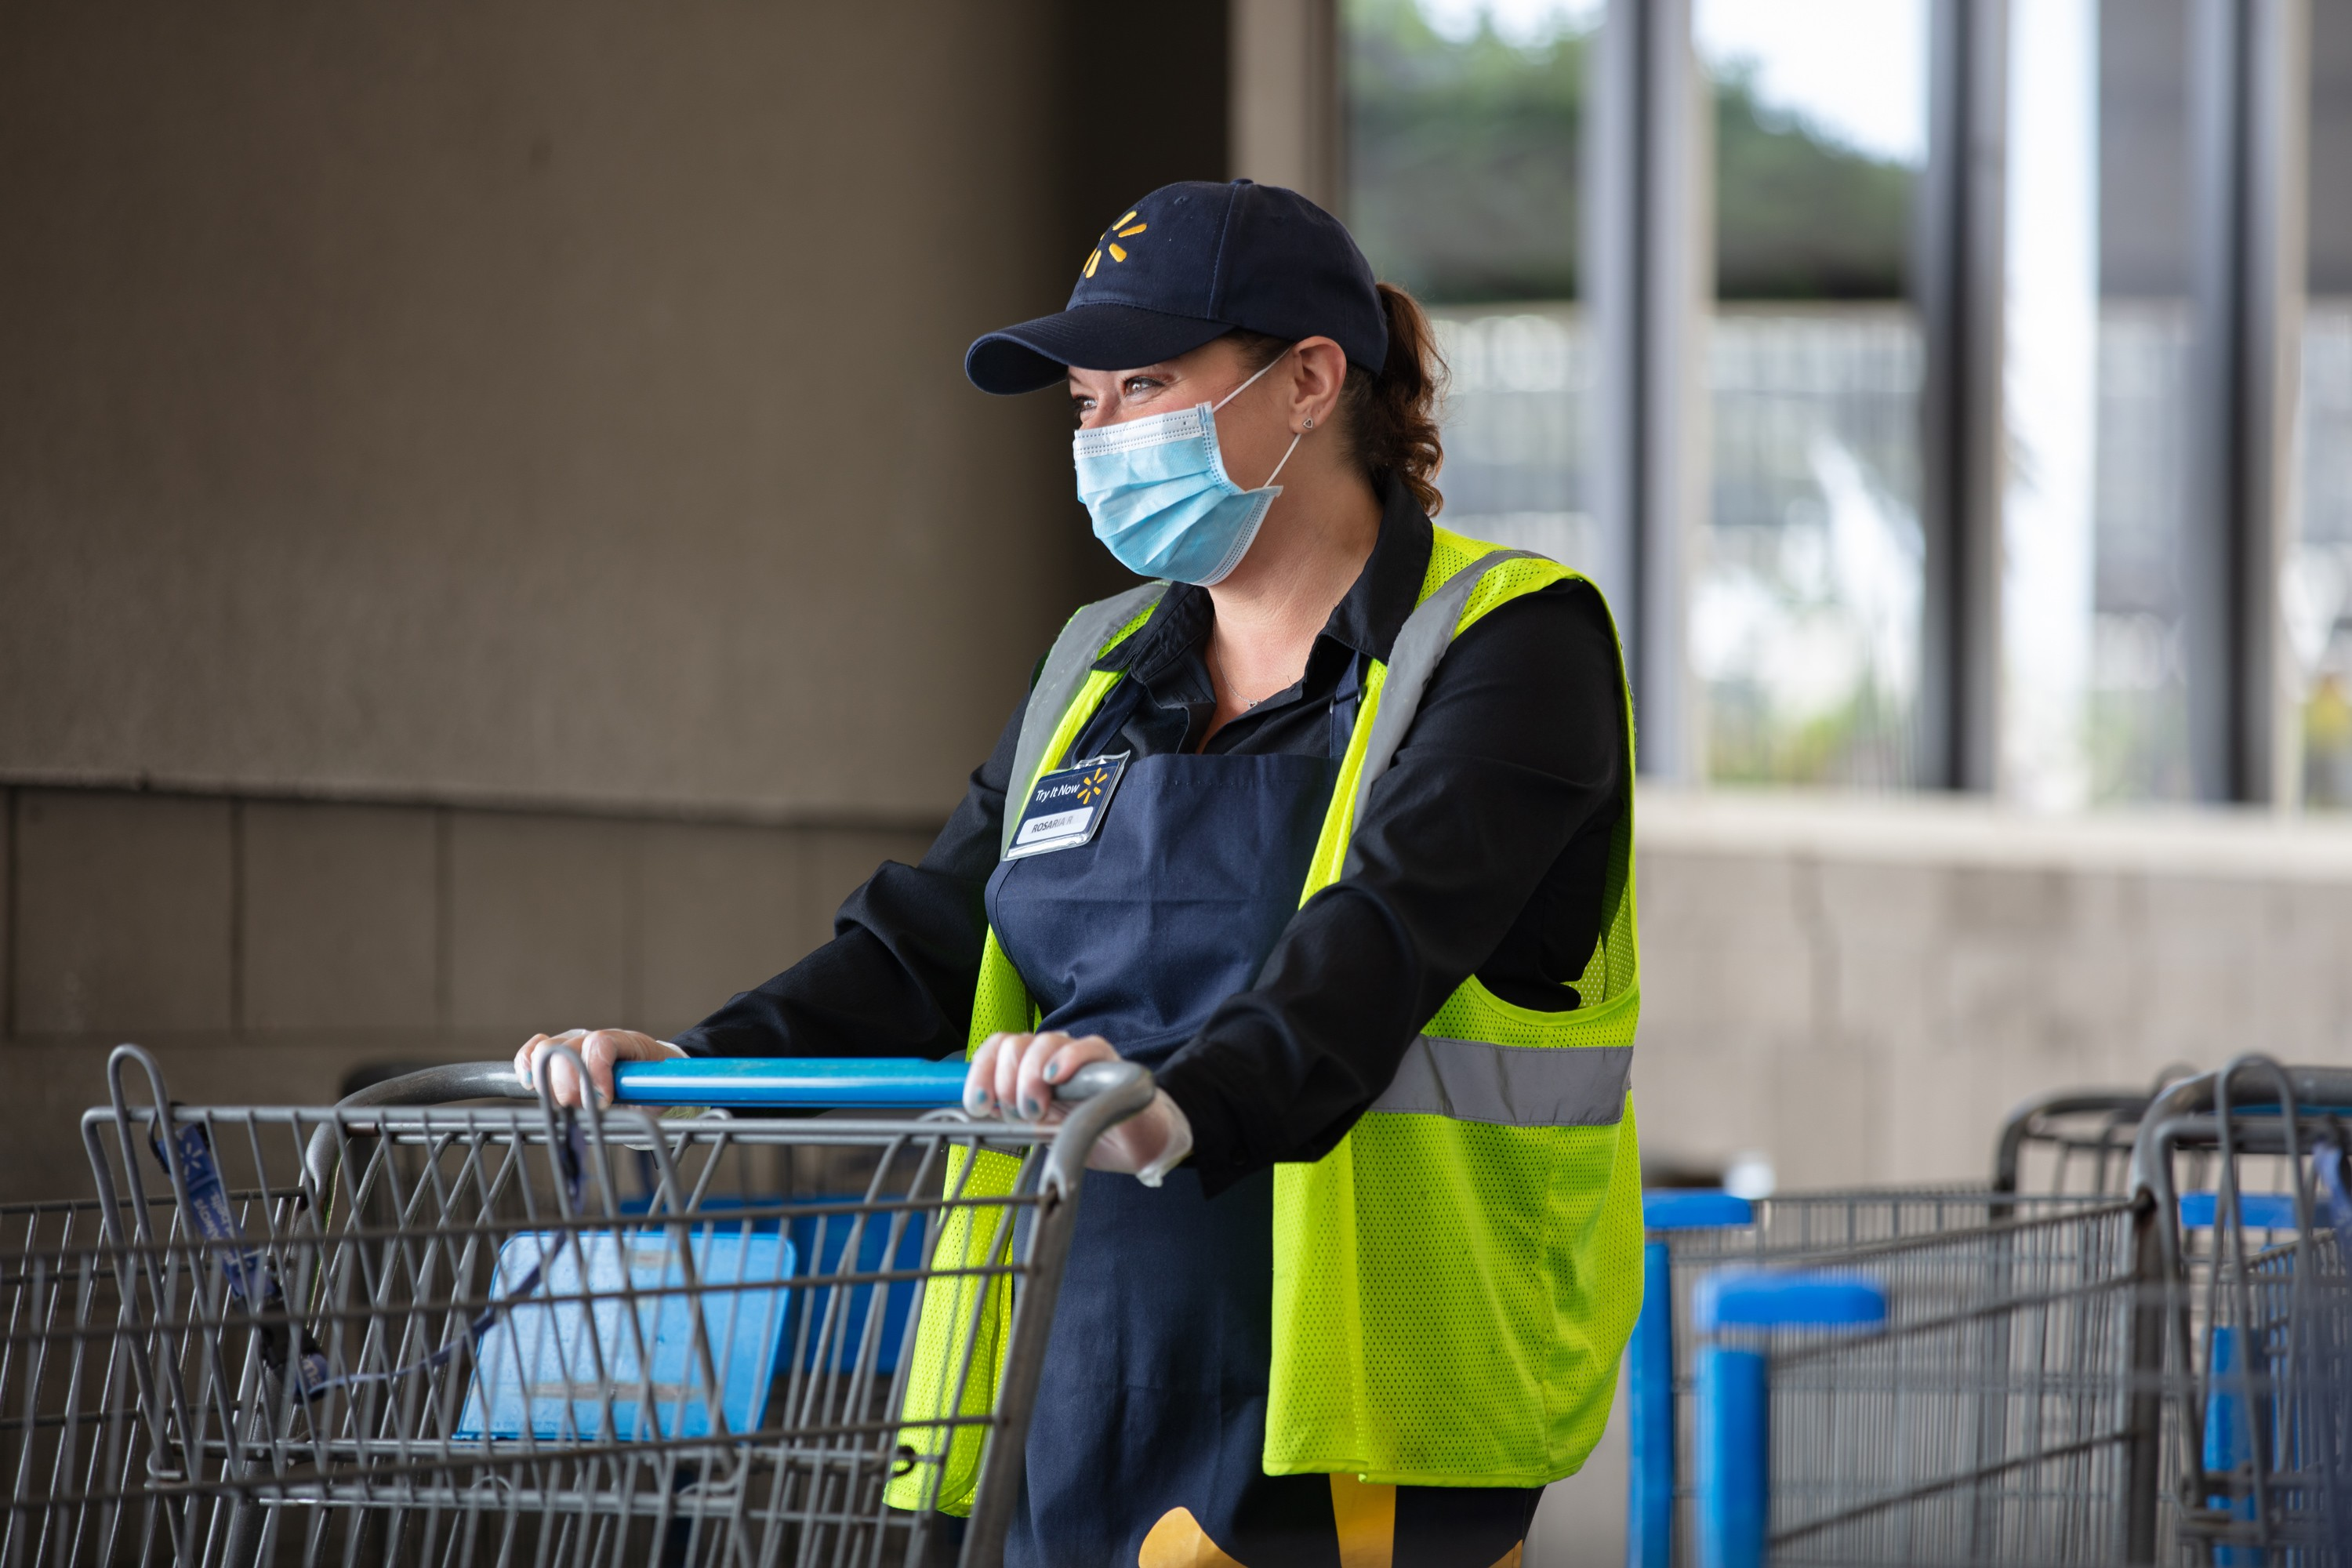 An associate wears a mask while moving carts